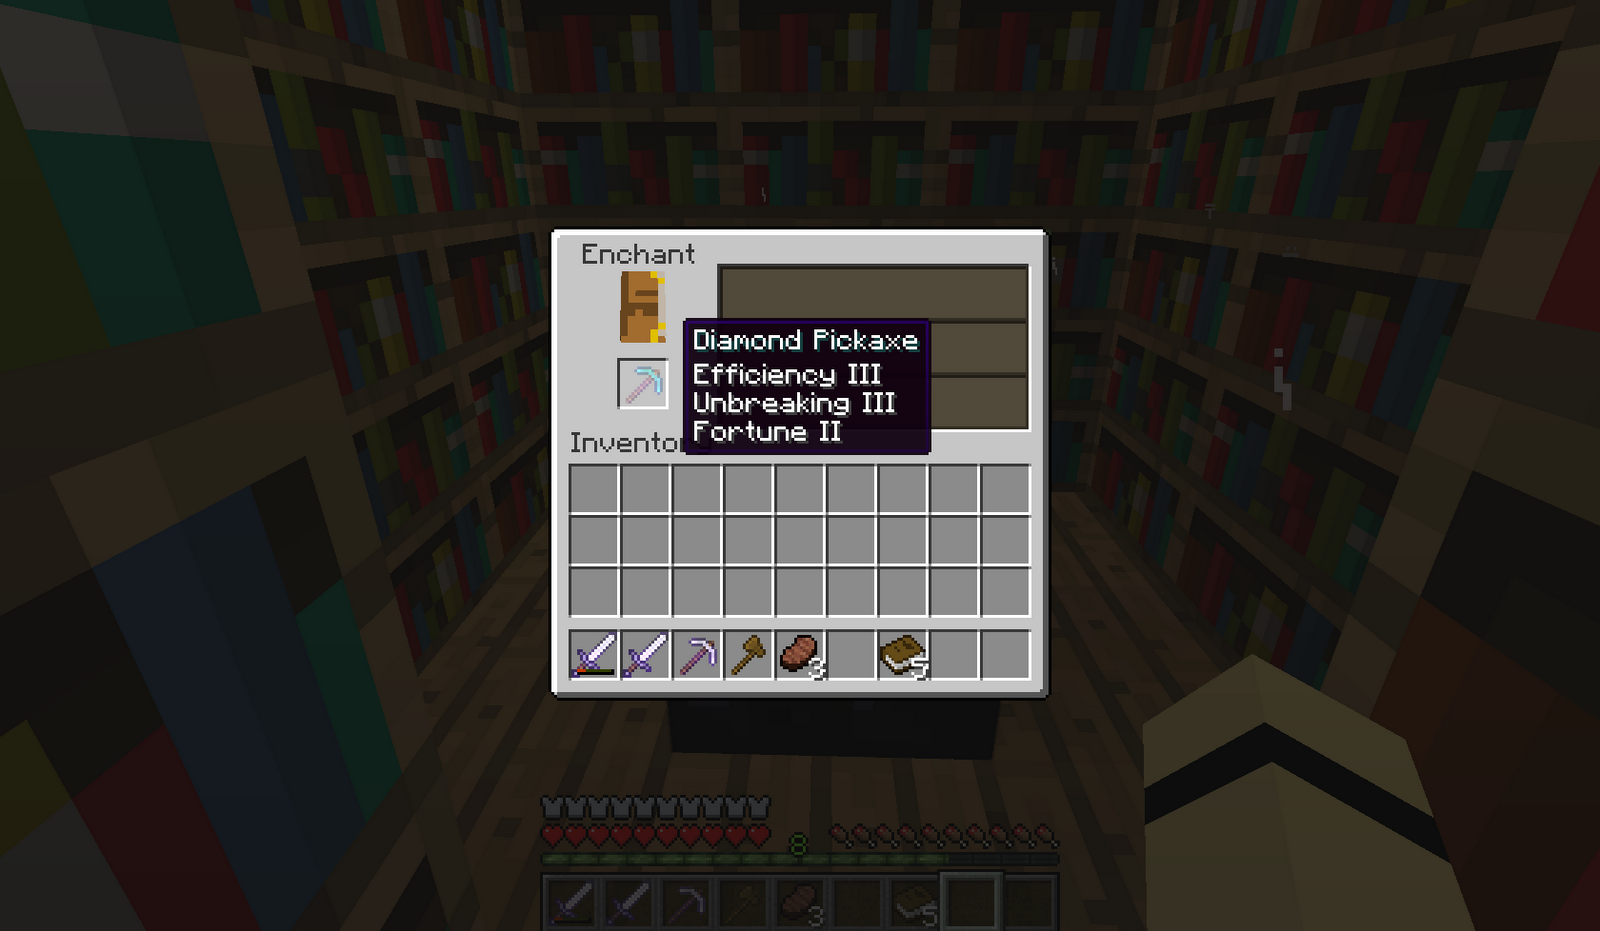 Marvelous photograph of Minecraft How To: How to get Enchantment Level 50 with #7D6141 color and 1600x931 pixels